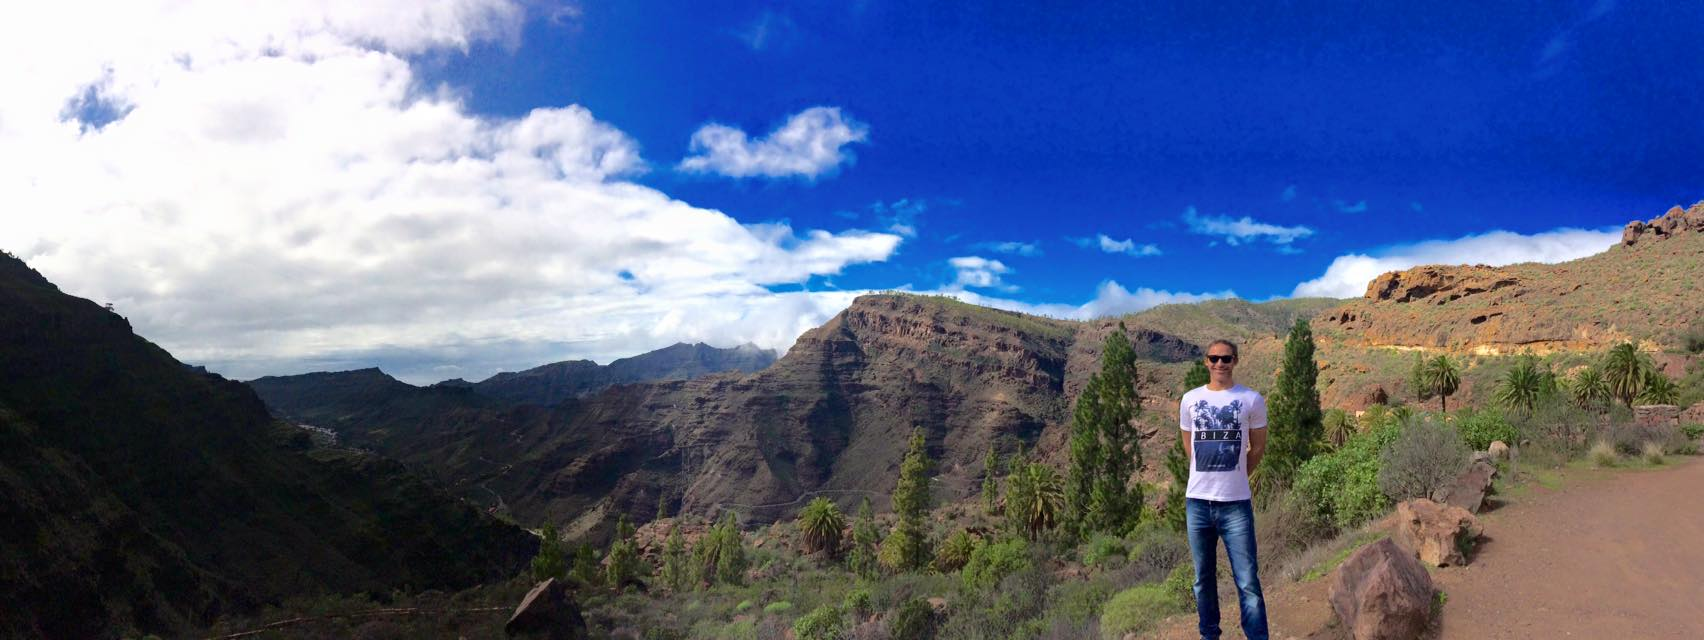 Roadtrip in Gran Canaria